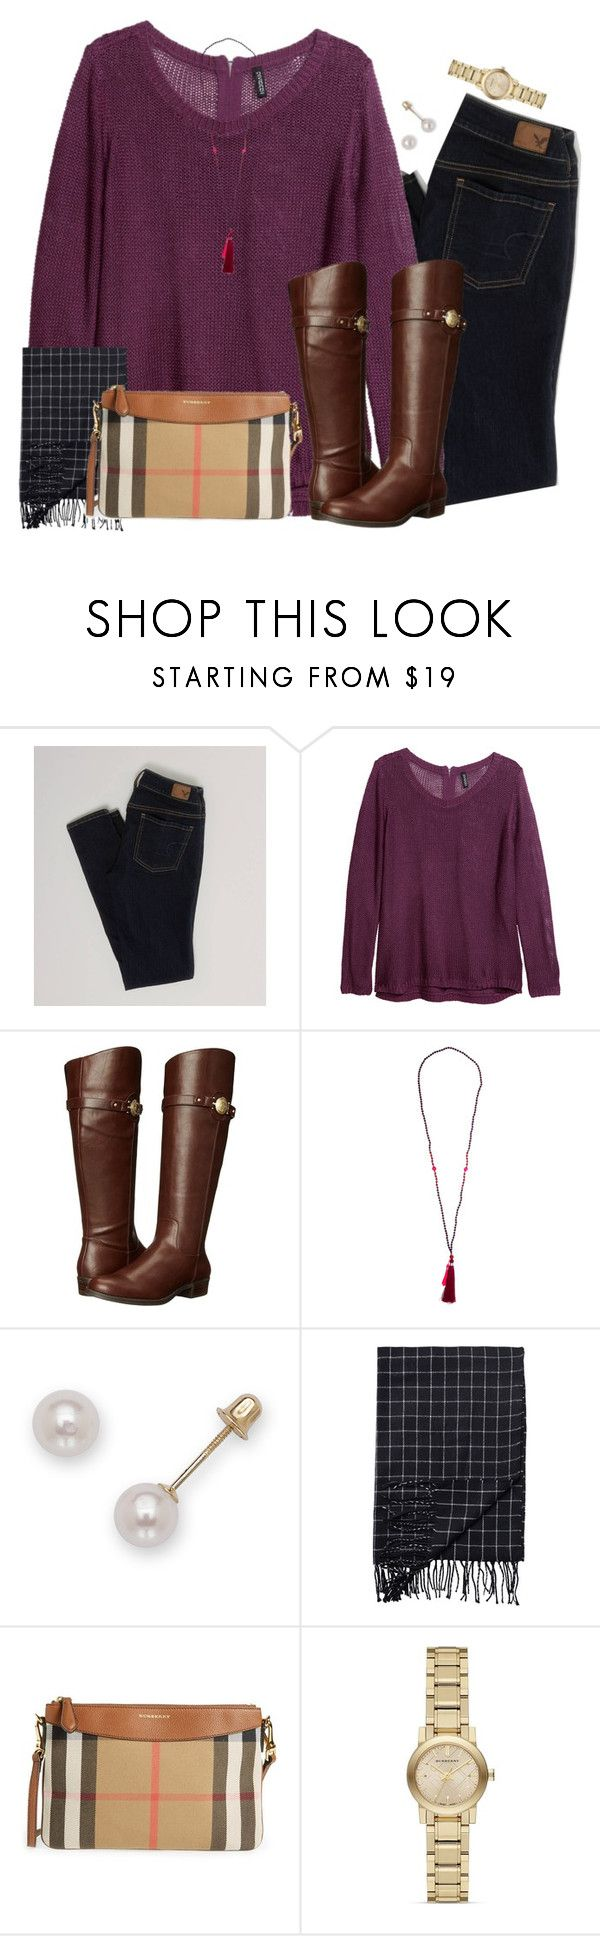 """Sorry for Only Posting Christmas Colors"" by southernstylish ❤ liked on Polyvore featuring American Eagle Outfitters, H&M, Tommy Hilfiger, Monki and Burberry"